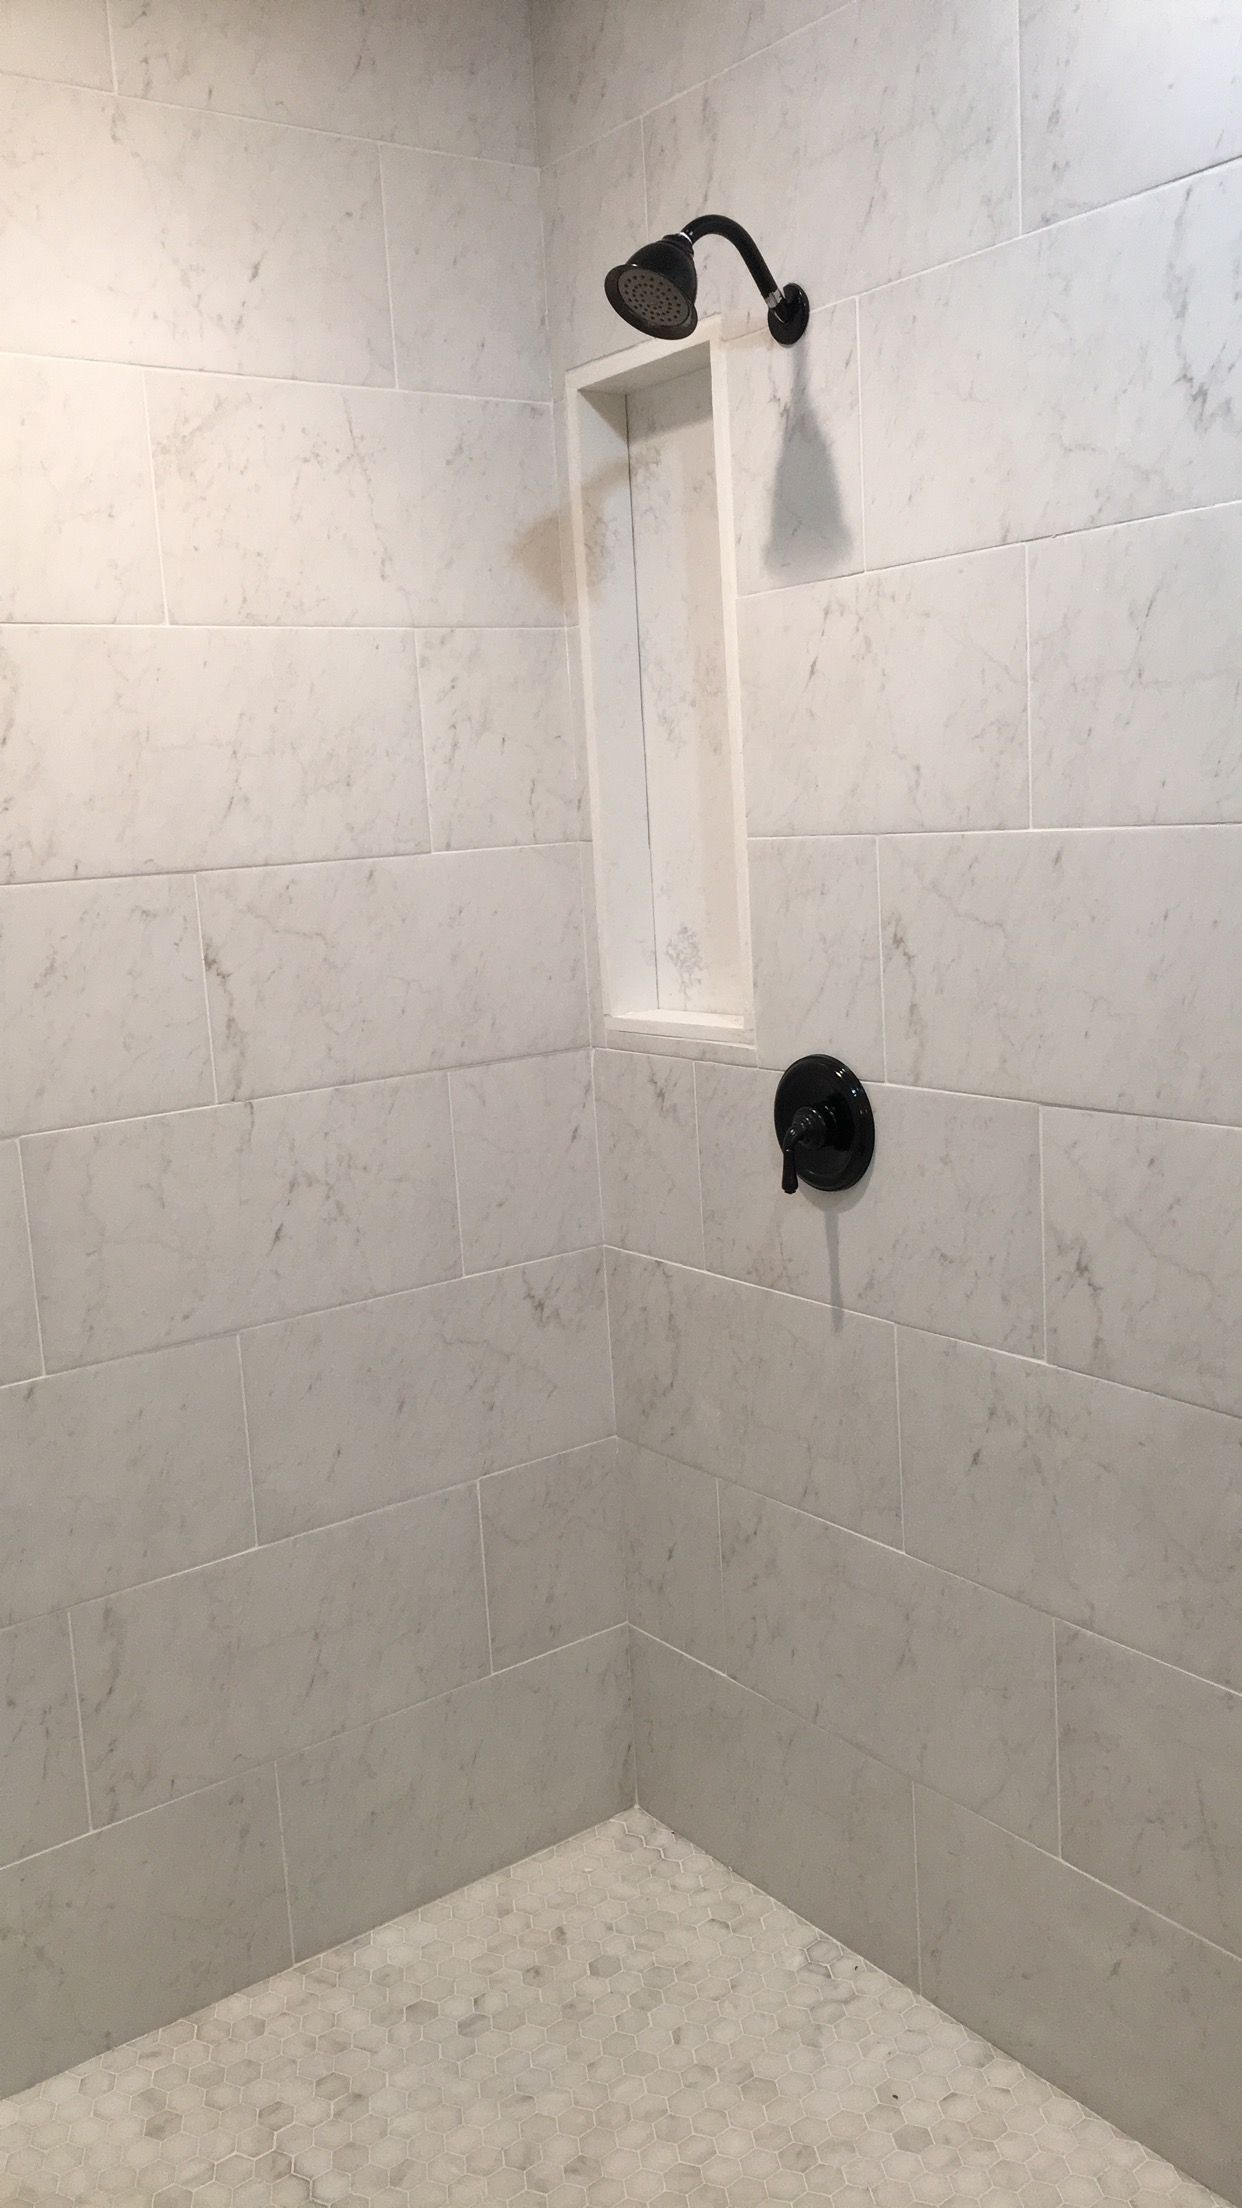 White Shower 12x24 Tiles Black Shower Faucet Marble Floors Marble Shower Walls Marble Showers Marble Tile Bathroom Shower